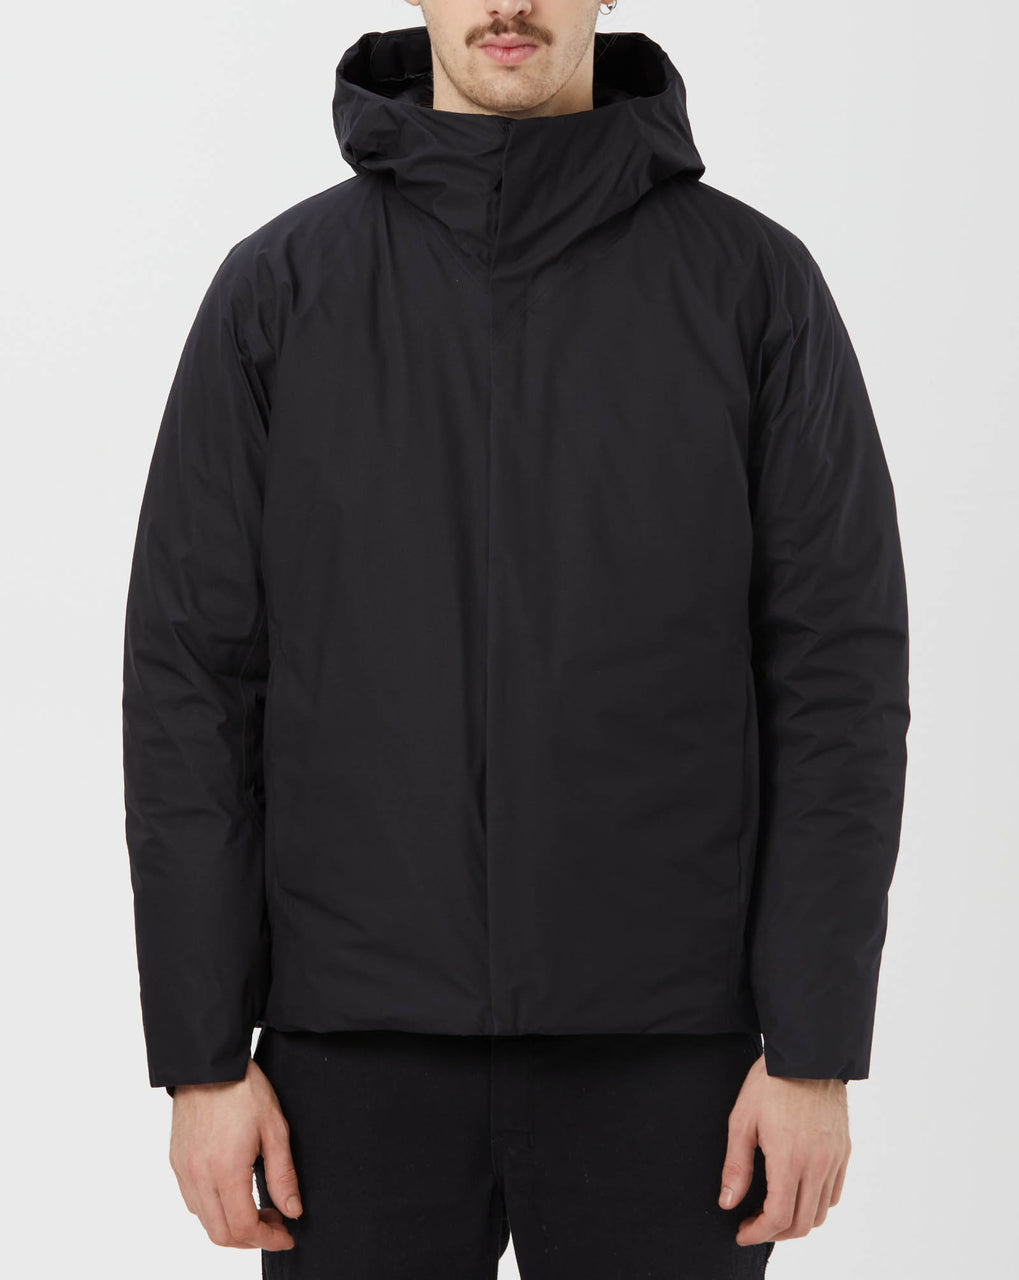 Veilance Altus Down Jacket (Black)